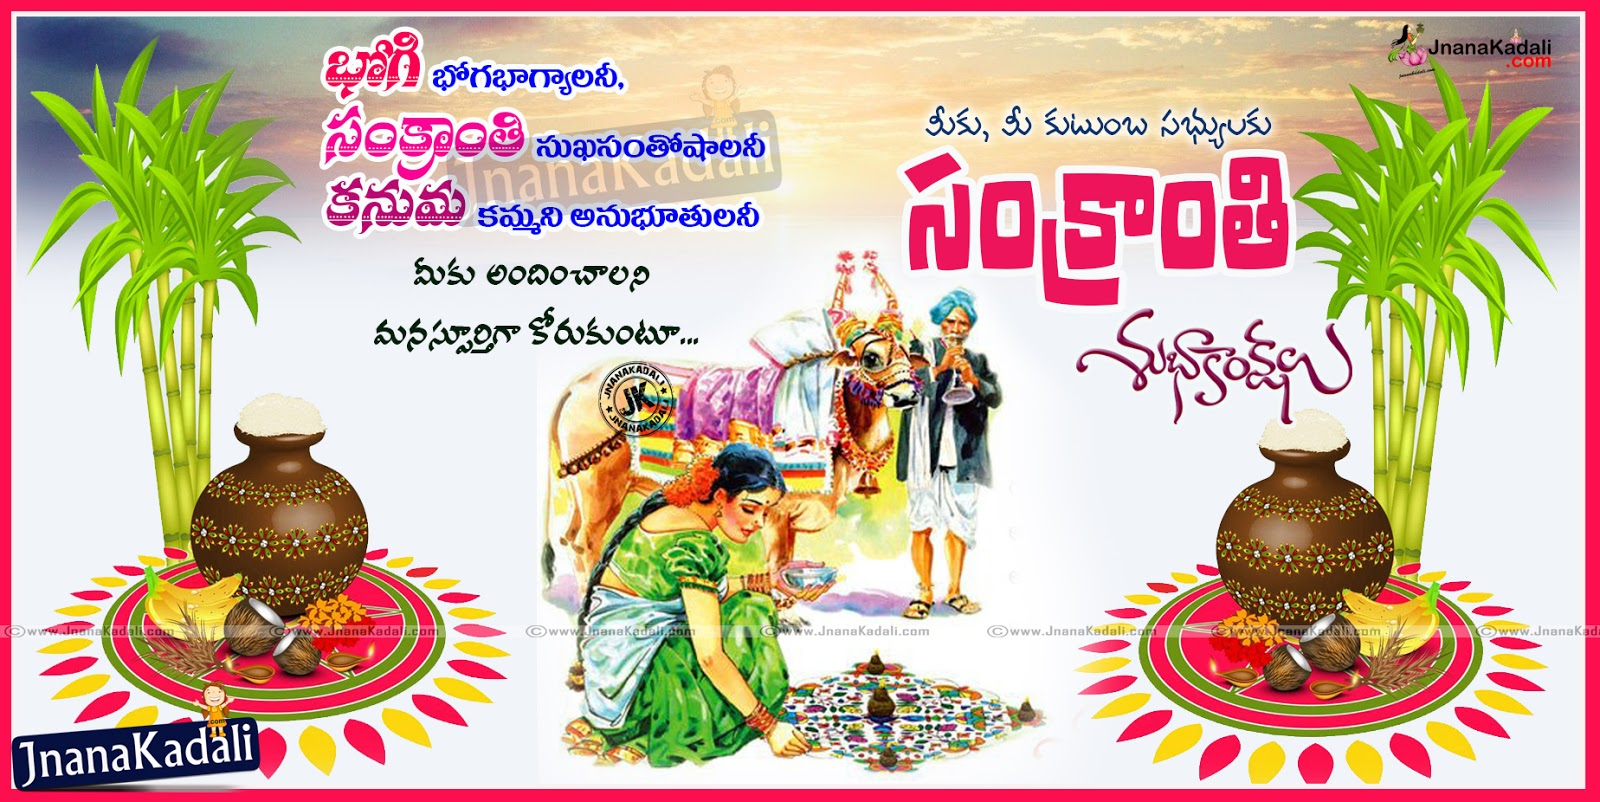 Awesome telugu festival greetings for pongal sankranthi kanuma awesome telugu festival greetings for pongal sankranthi kanuma wishes quotes hd wall papers kristyandbryce Images